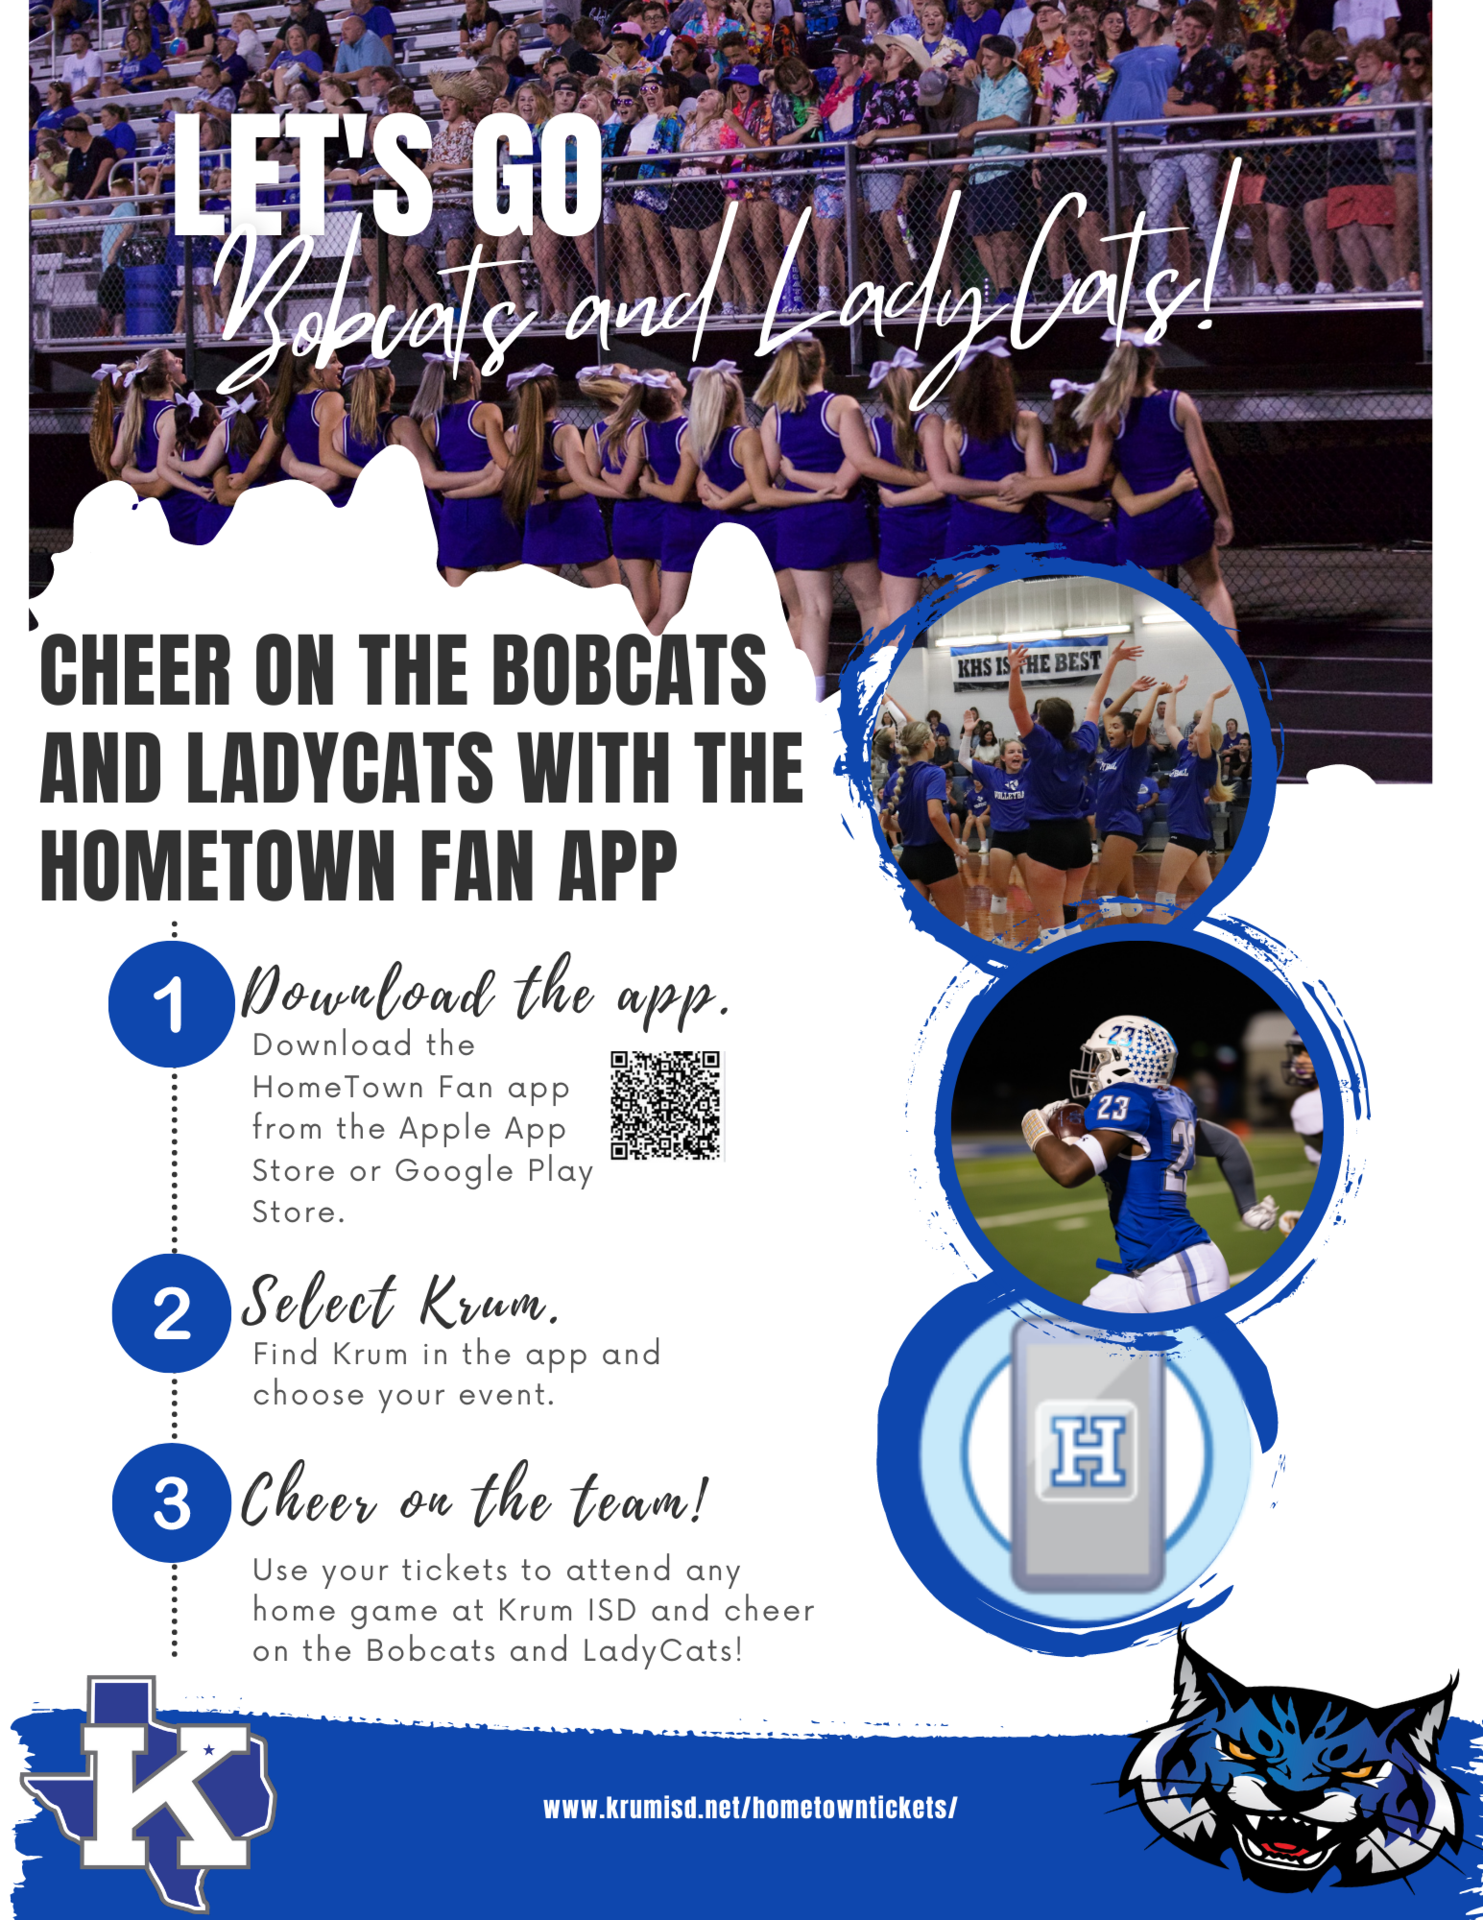 informational flier to utilize hometown fan app to support bobcats and ladycats